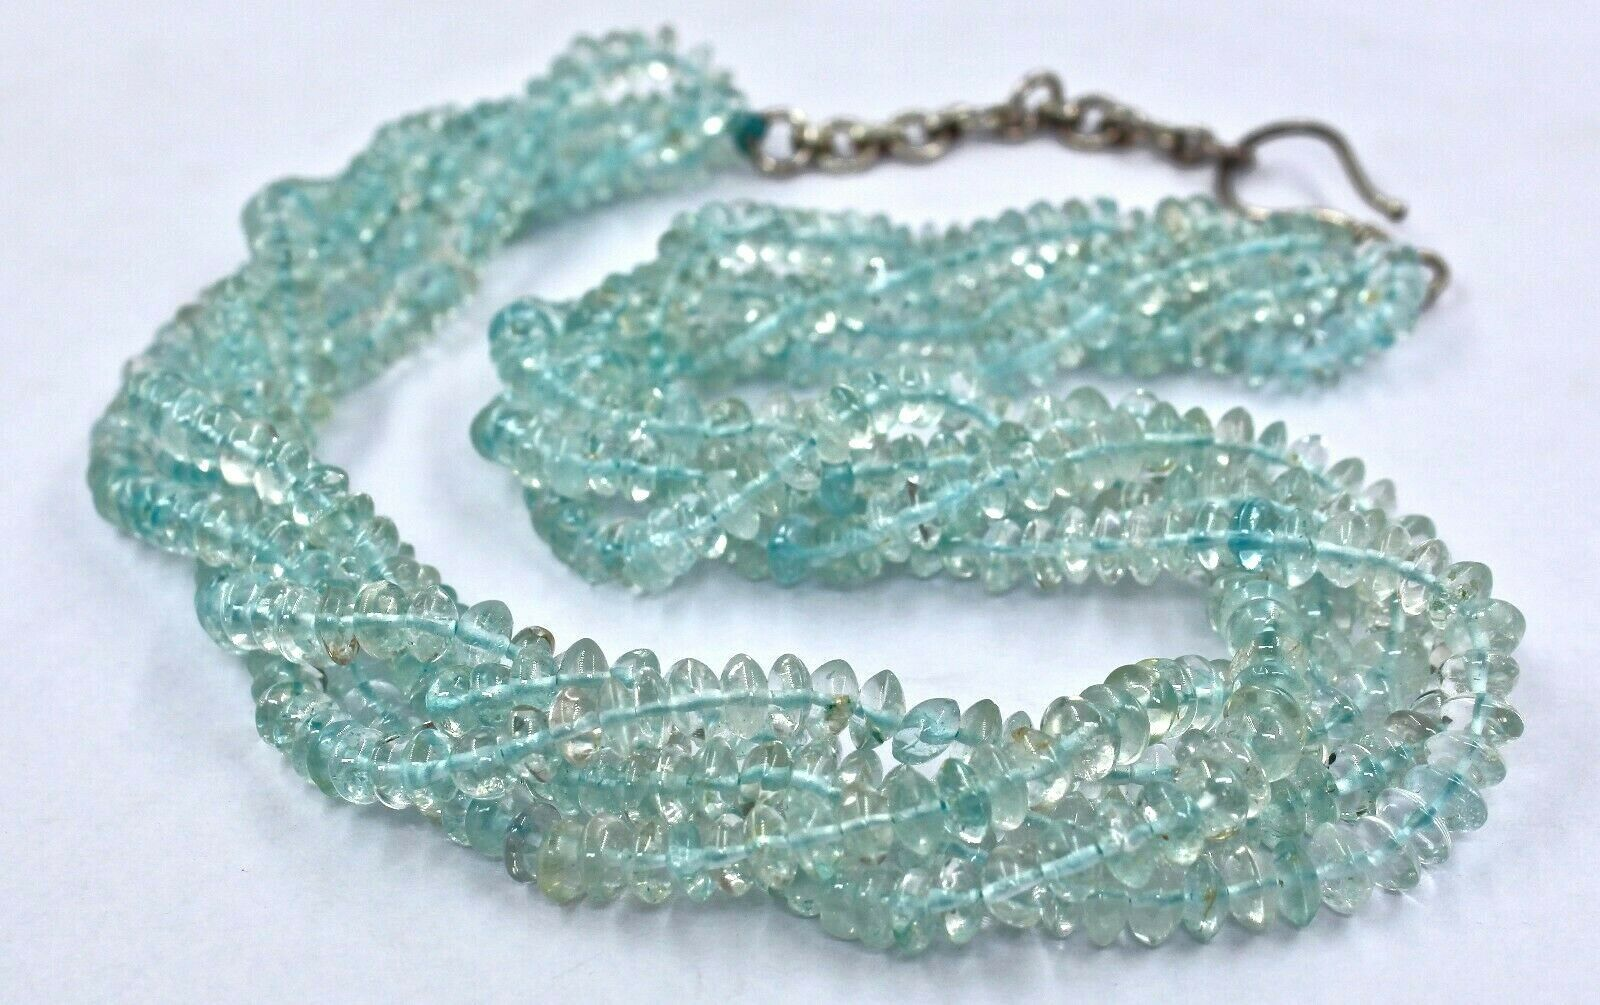 CLASSIC BLUE TOPAZ ROUND BUTTON BEADS 3 LINE 568 CARATS GEMSTONE SILVER NECKLACE image 5